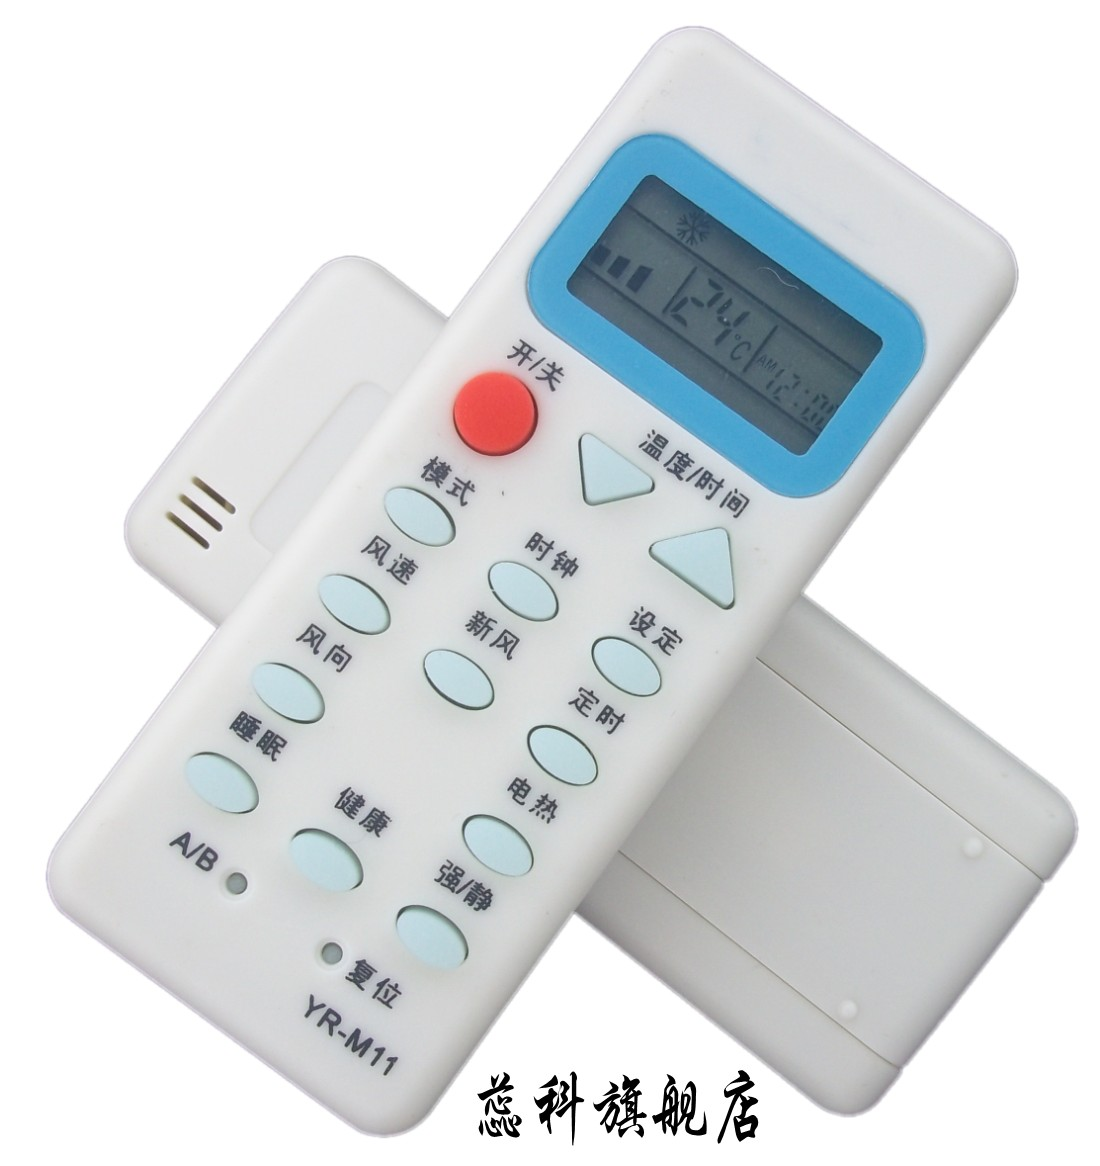 Free shipping applies to haier/haier air conditioner remote control yr-m11 haier air conditioner remote control